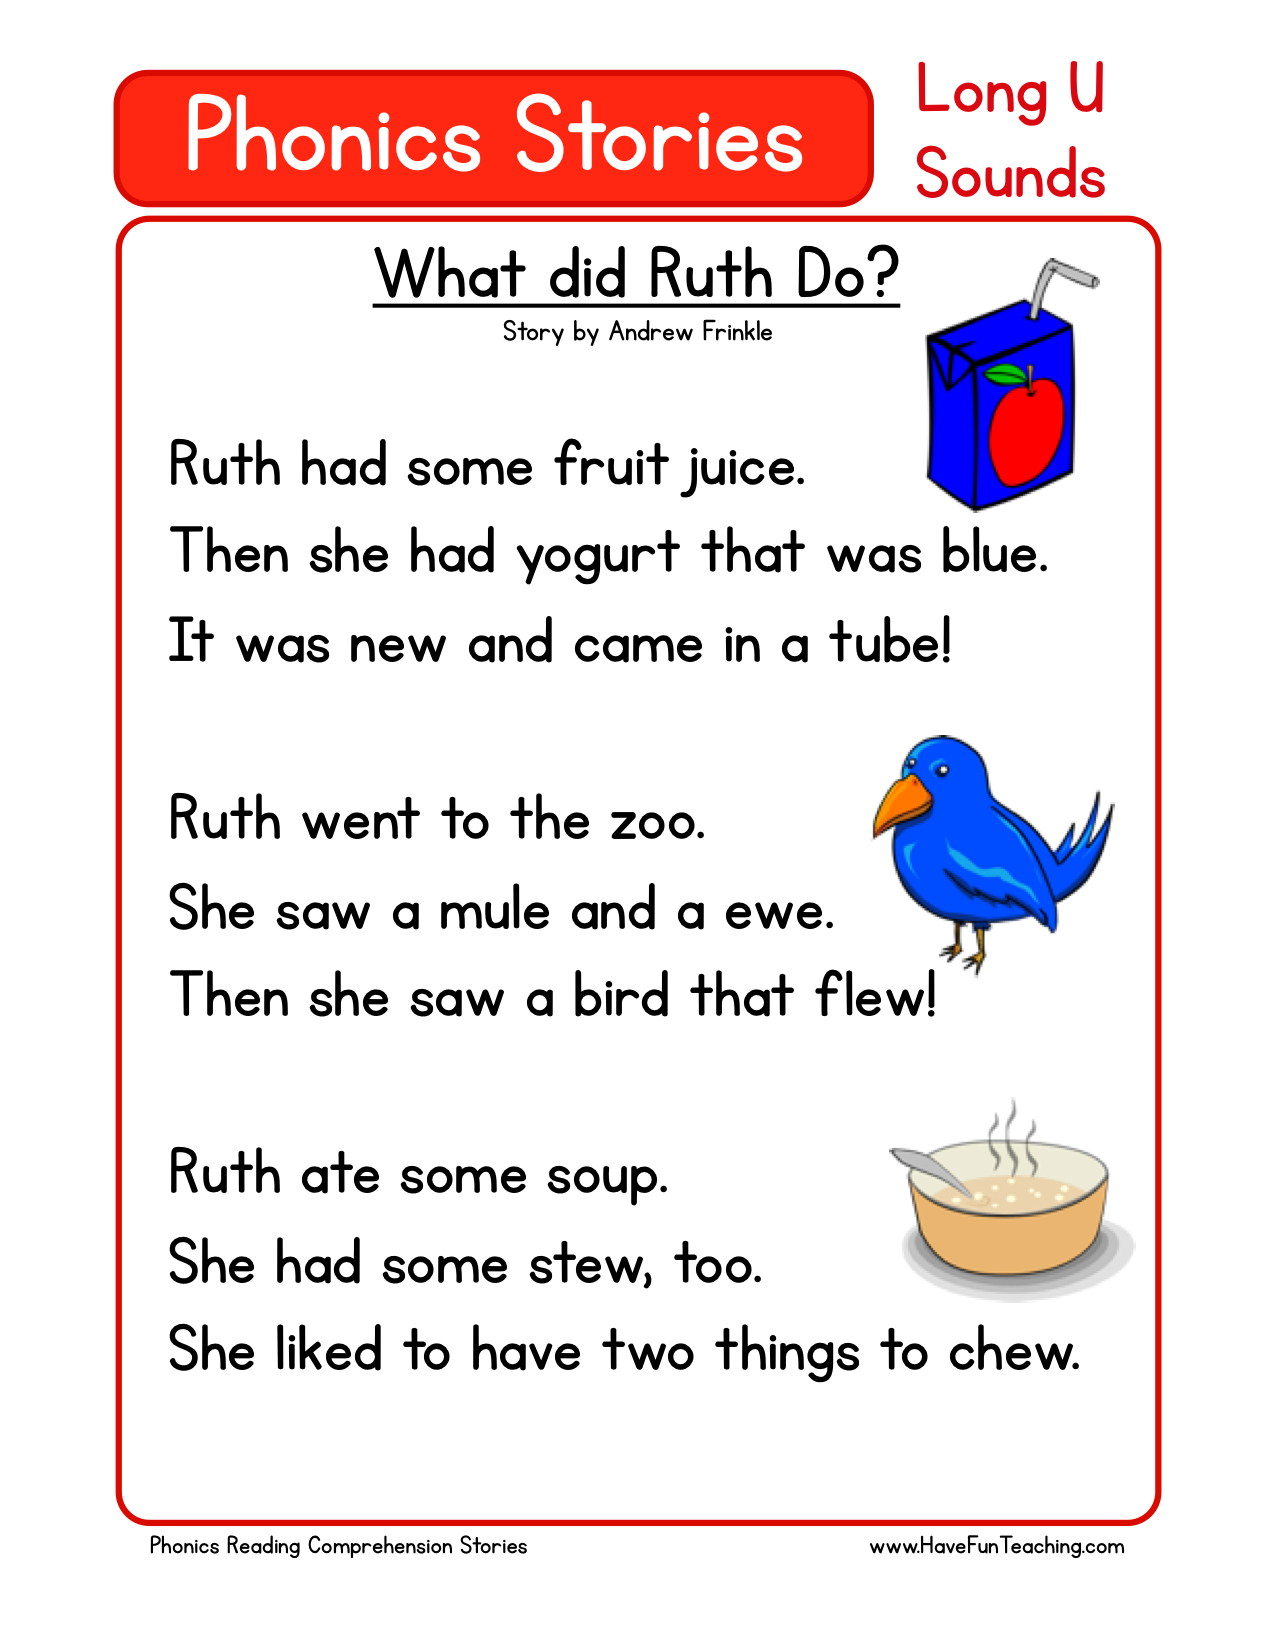 What did Ruth Do?